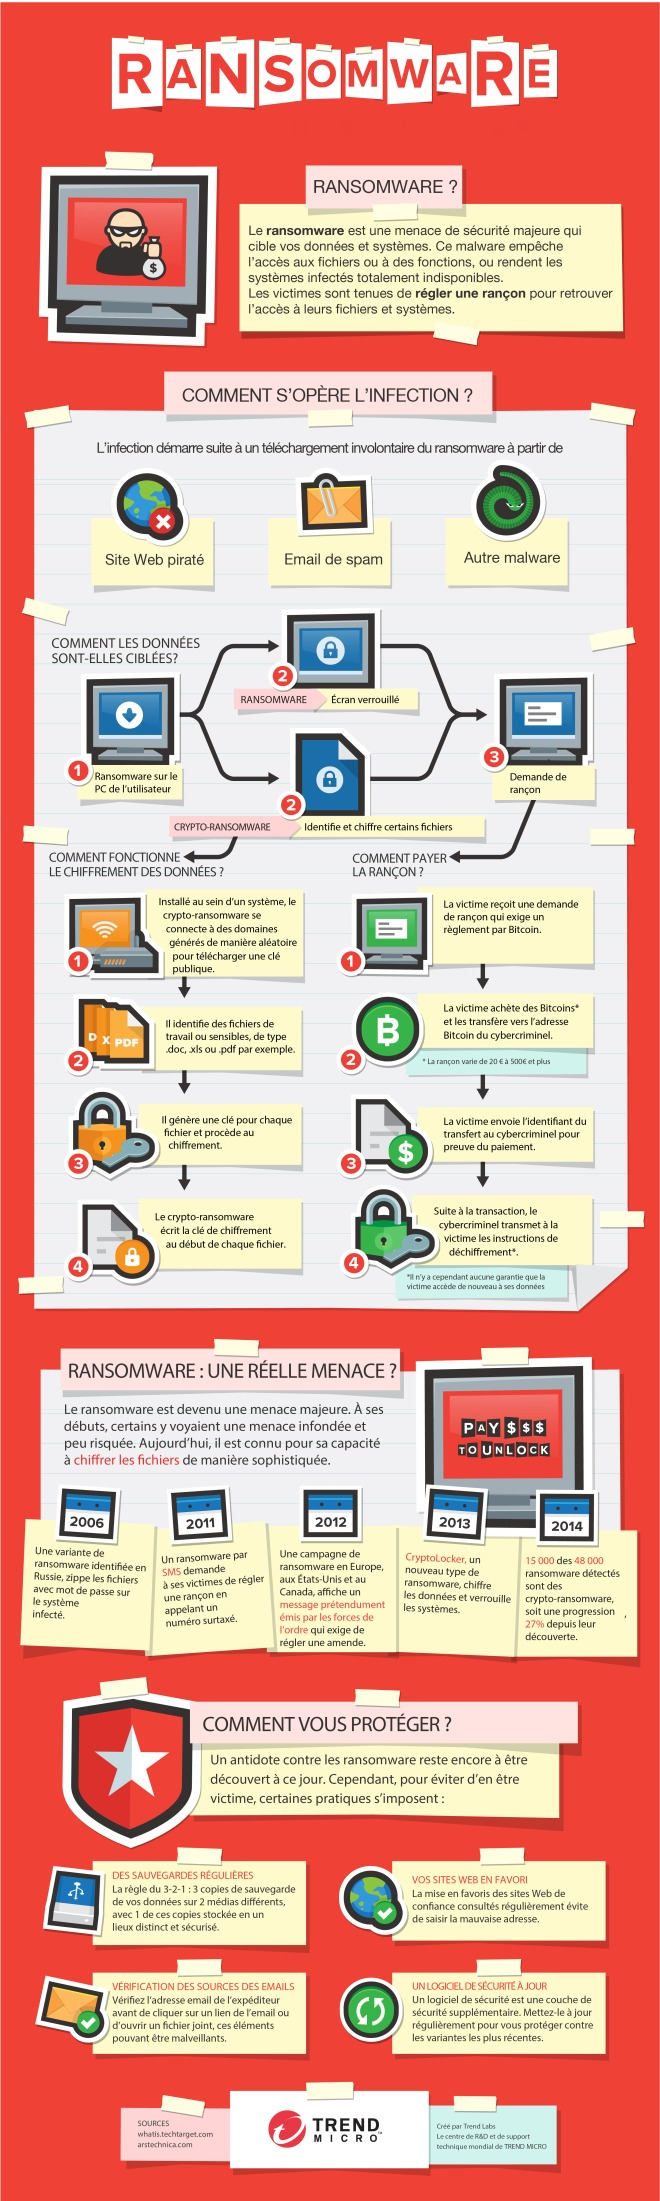 ransomware-101fr